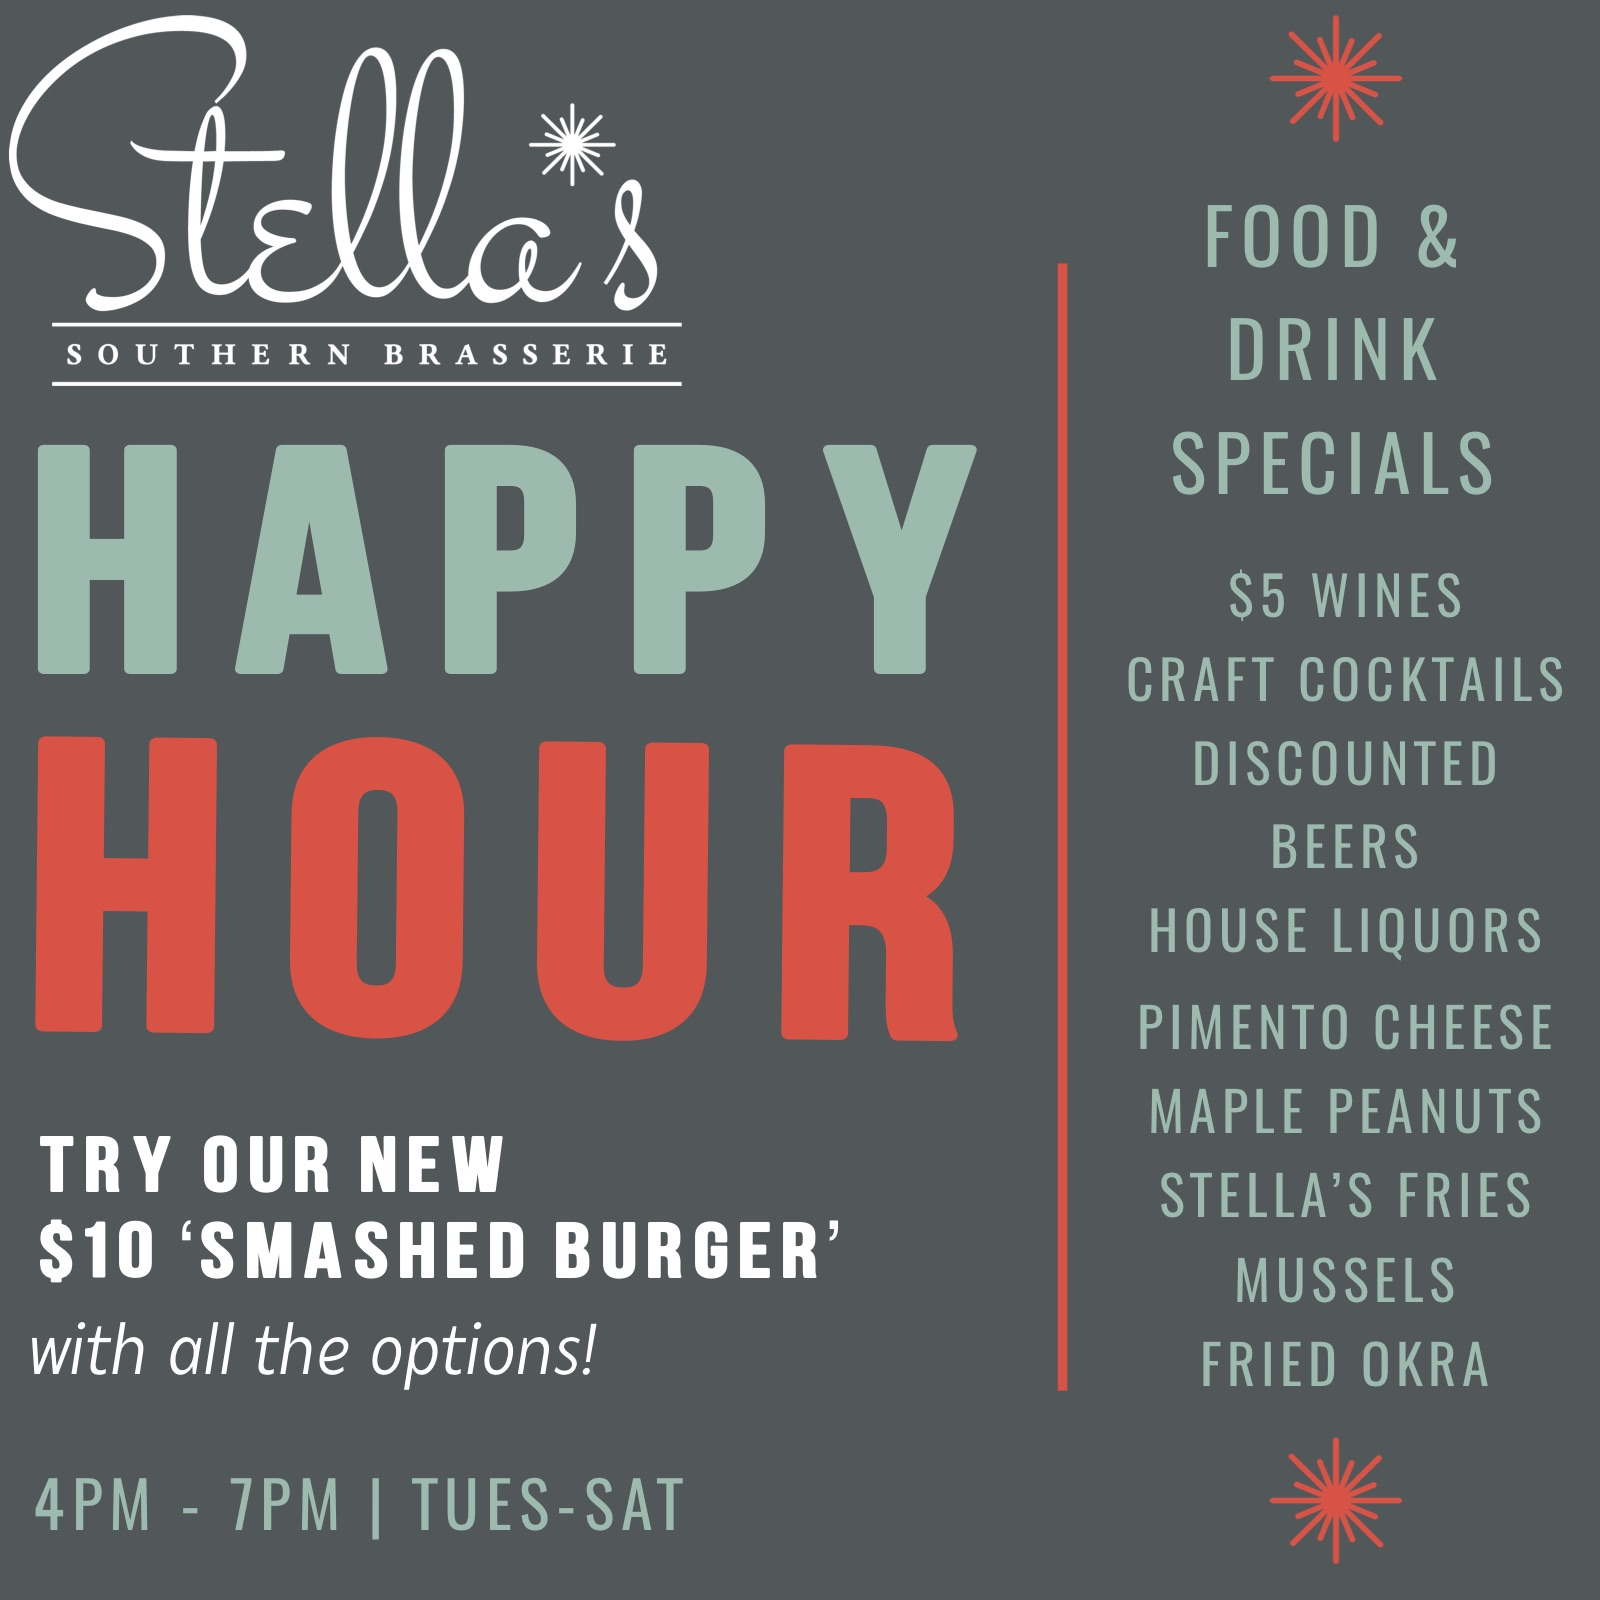 stellas brasserie new happy hour promo